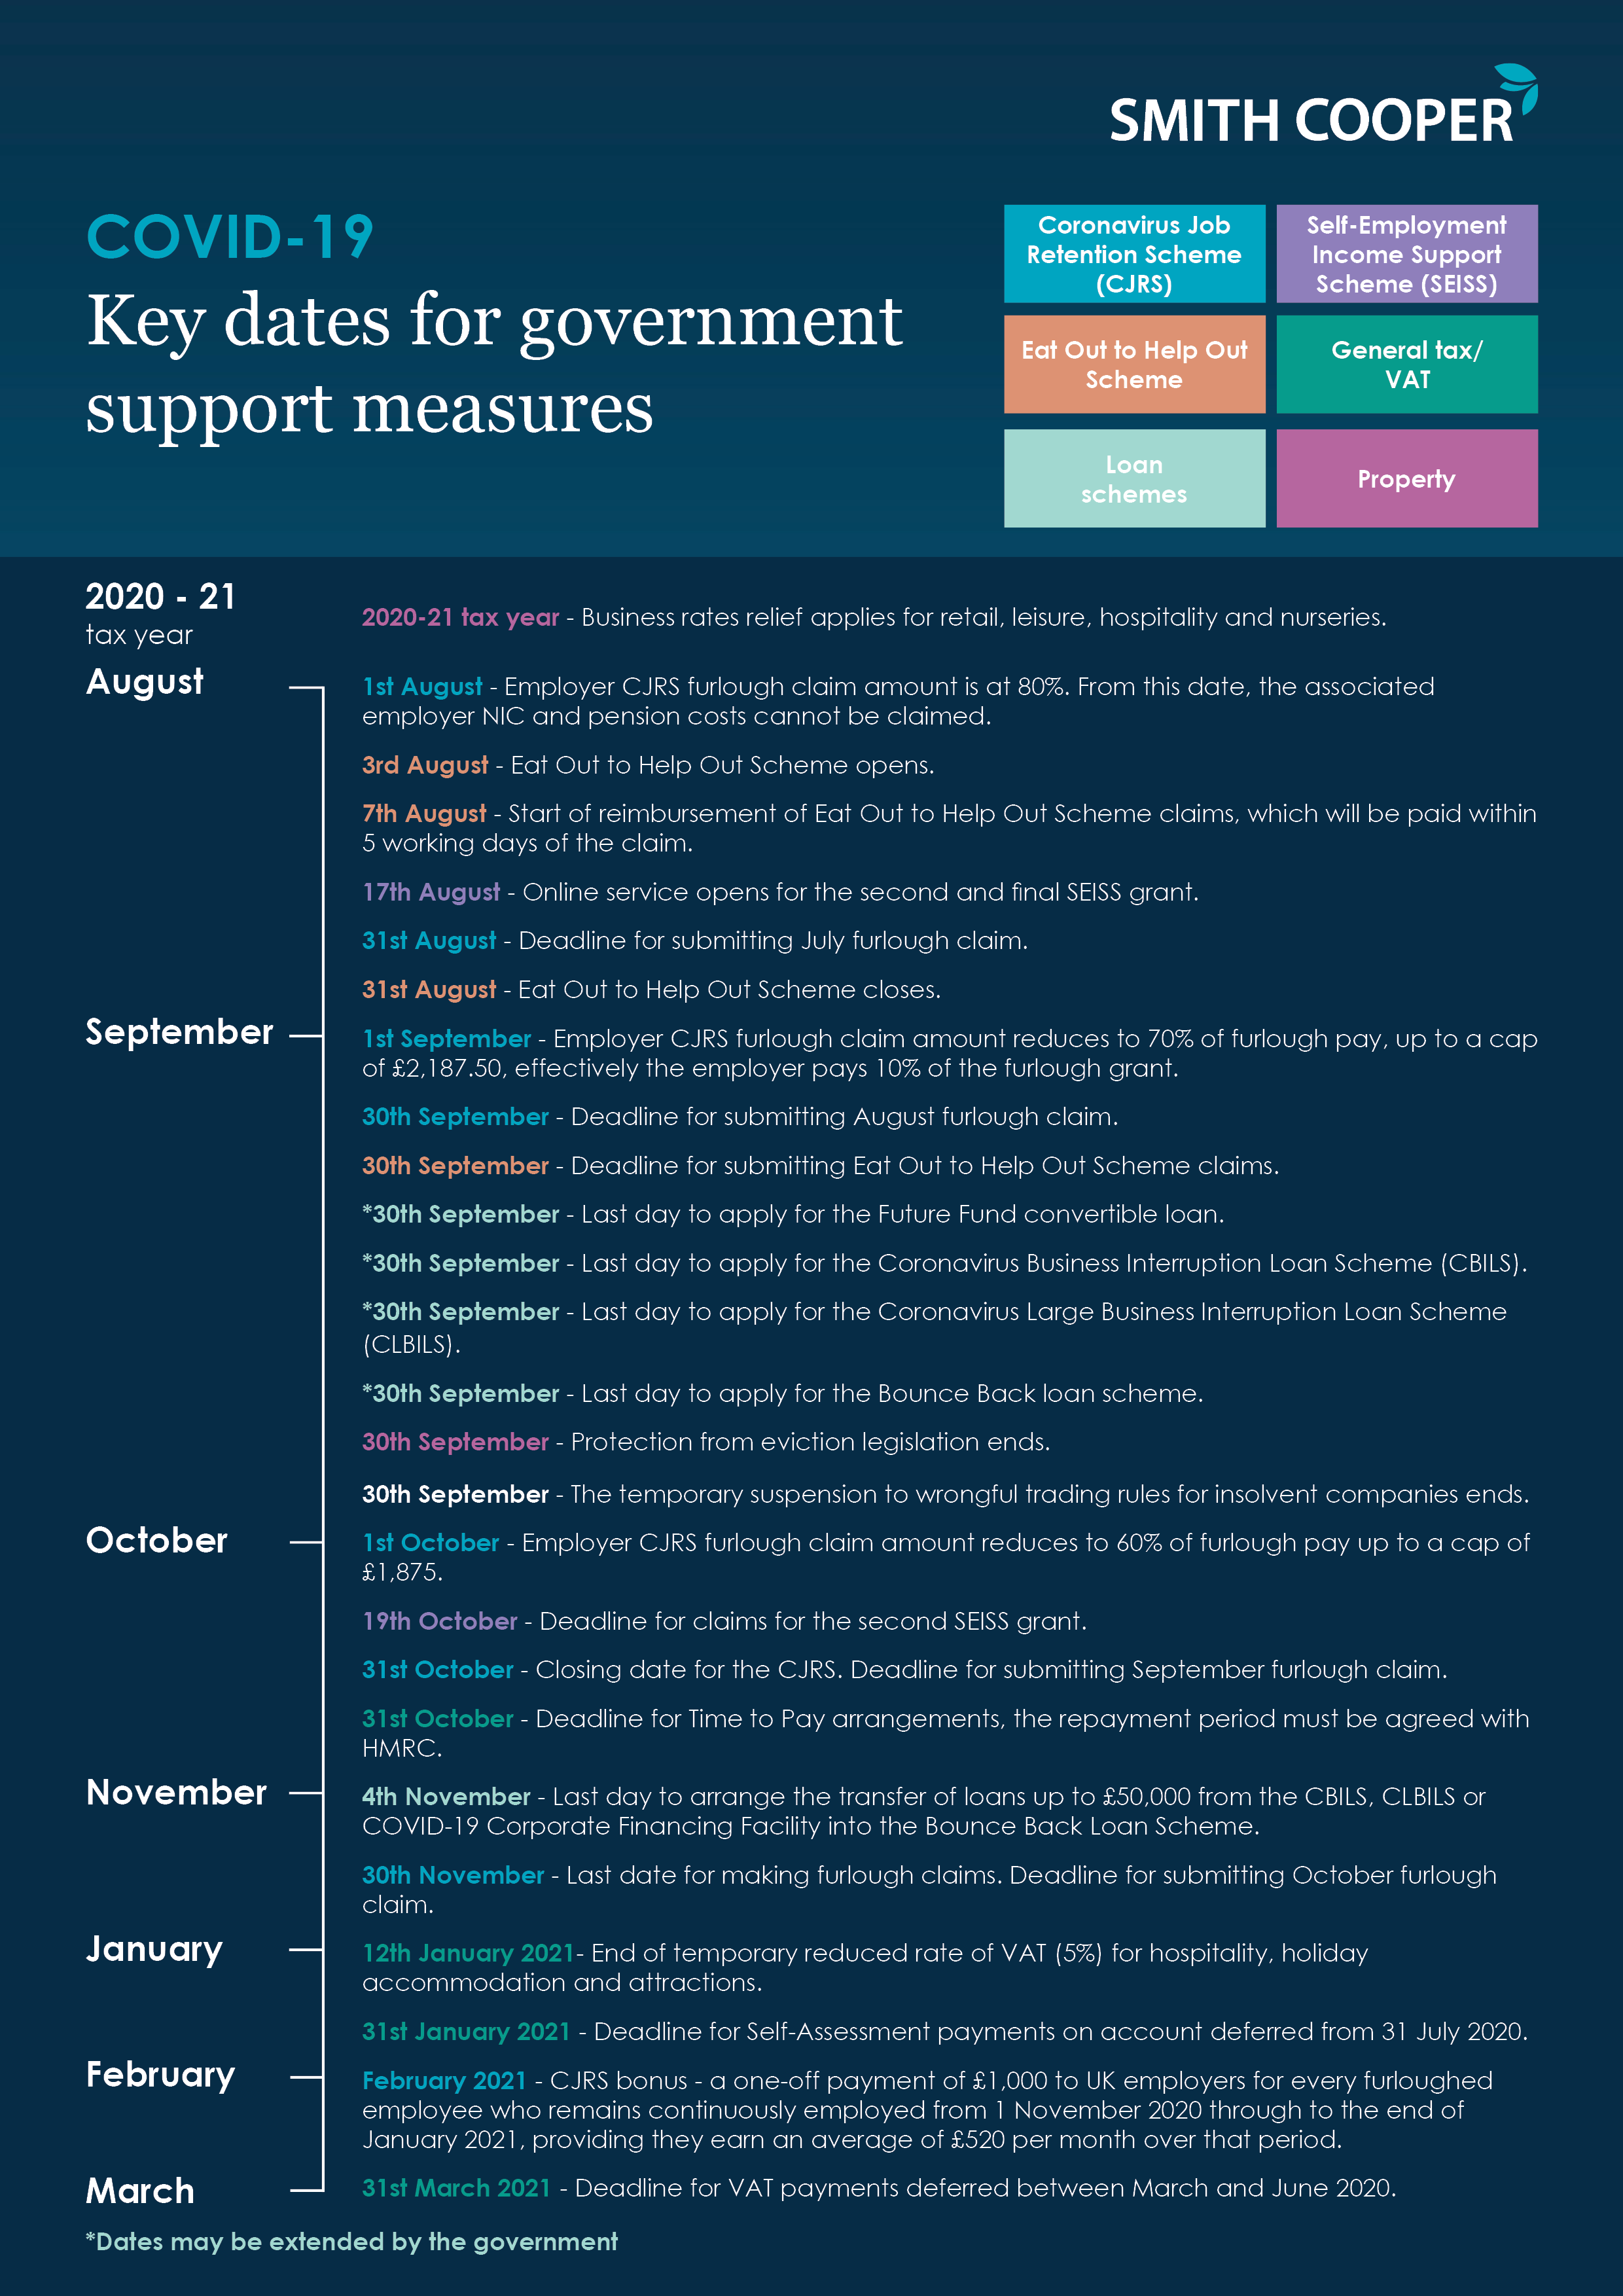 Covid 19 Key Dates For Government Support Measures Smith Cooper